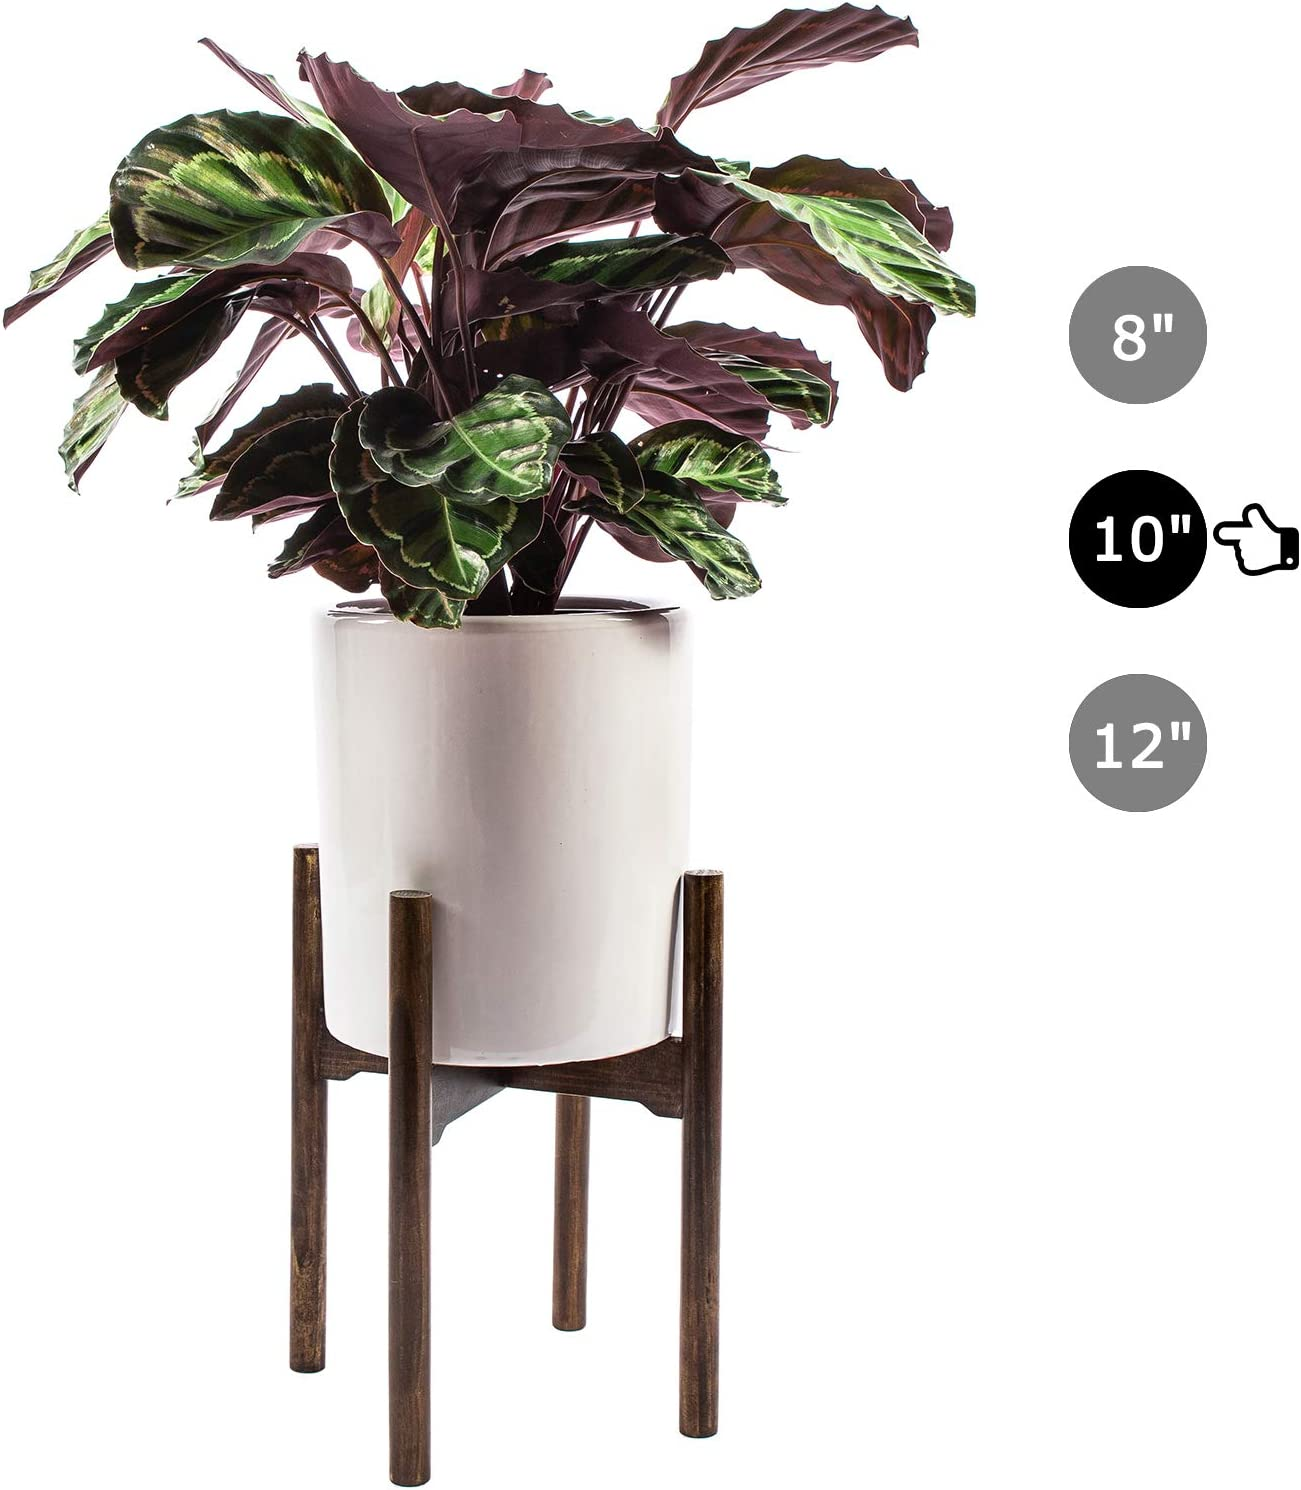 MoonFly Wood Plant Stand Indoor Flower Pot Holder House Pot Rack Mid Century Modern Home Decor Fits Planter Multipurpose Bracket 10 Inches,Retro Dark Brown(Planter & Pot Not Included)